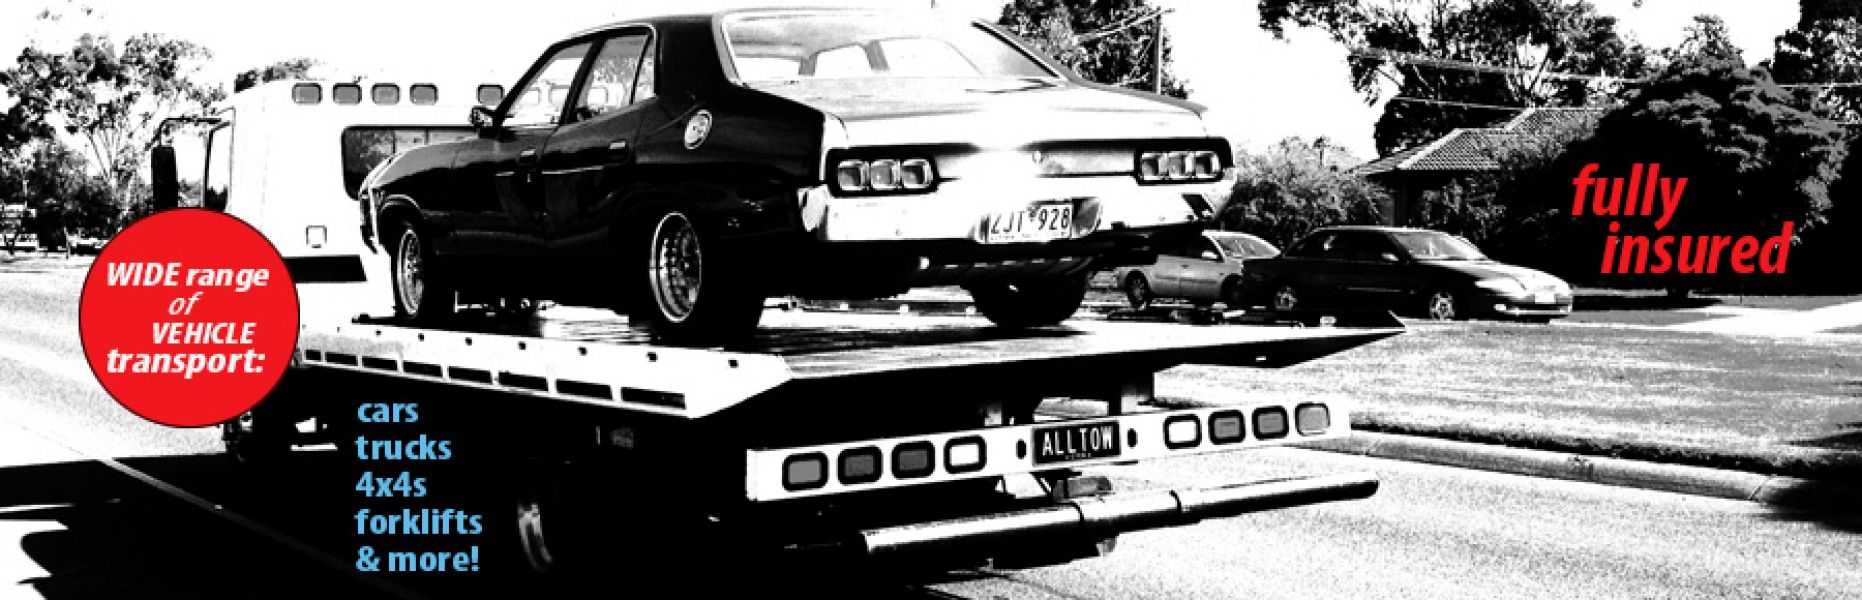 Towing Service | 24 Hour Towing Services Melbourne